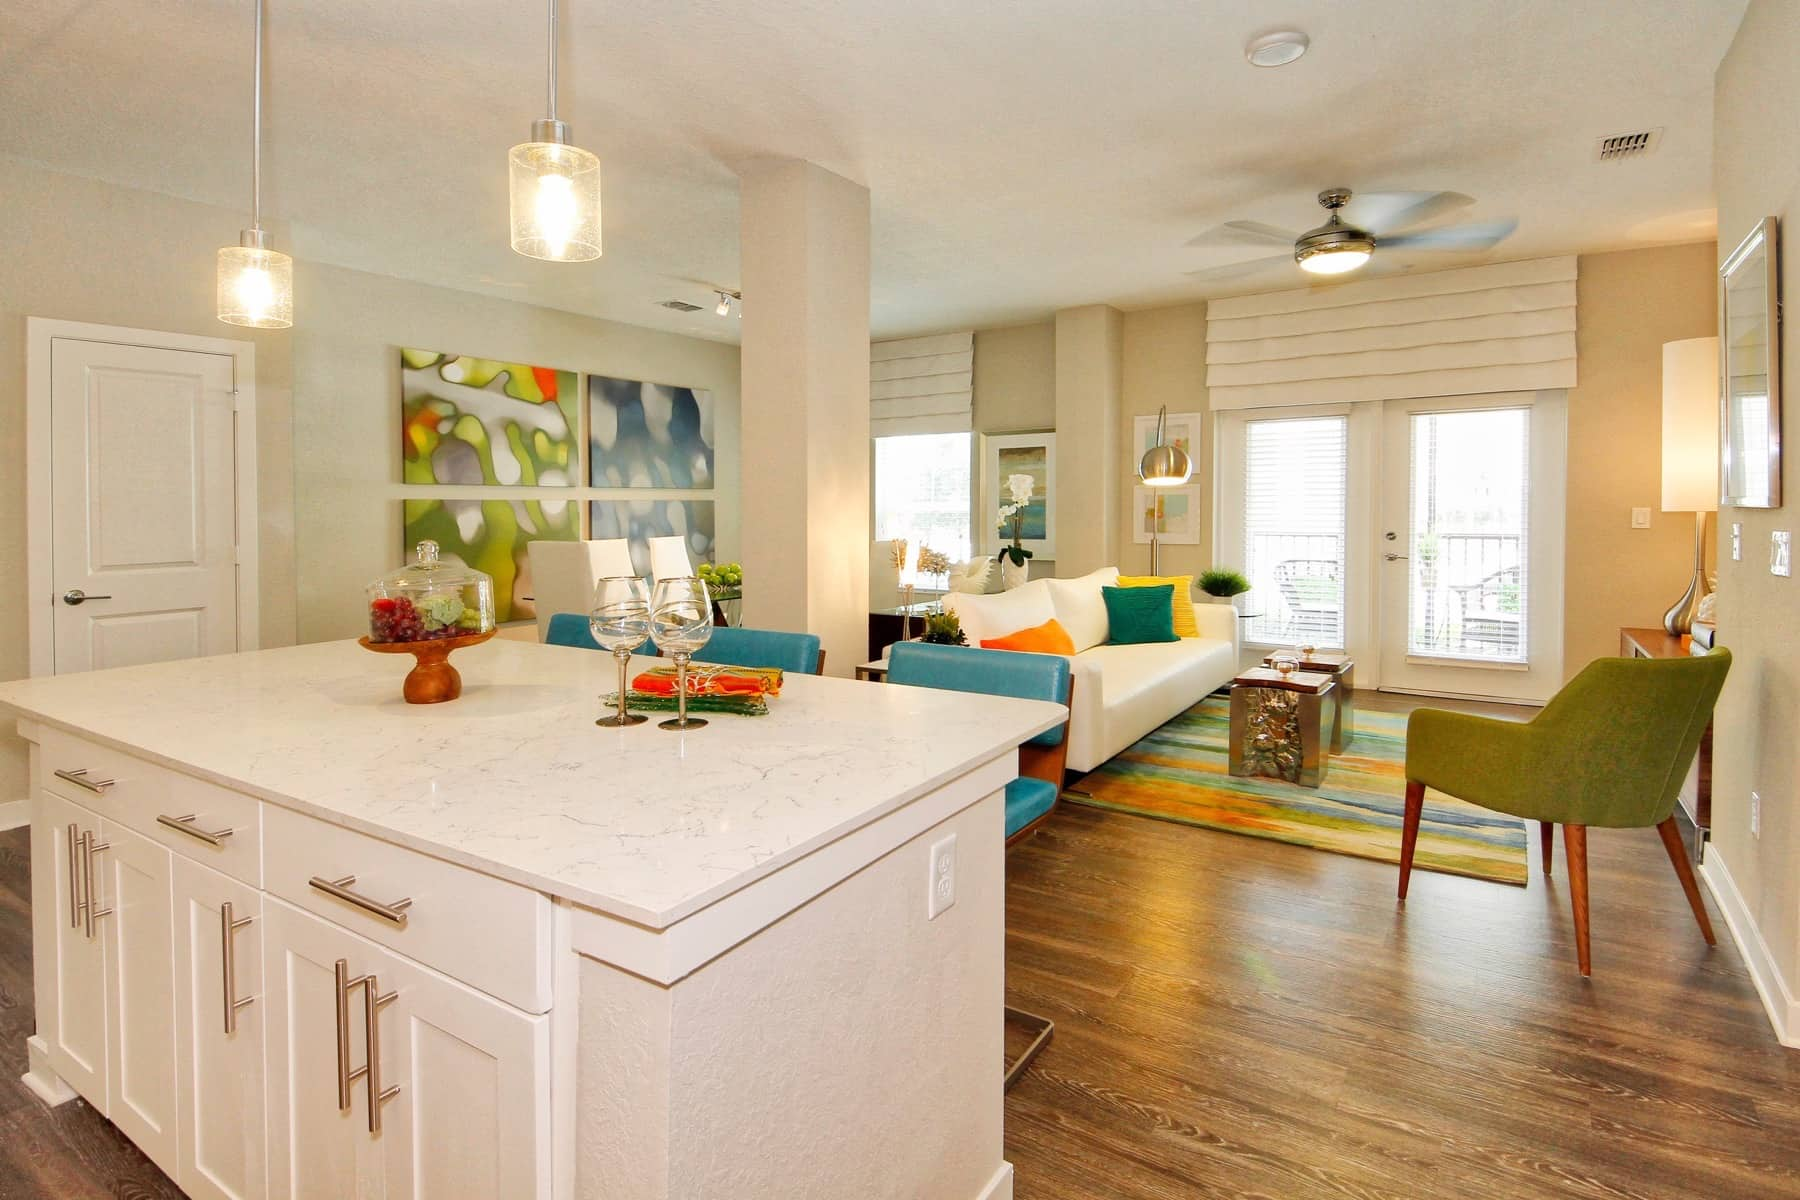 Incredible Marquis Coral Springs Apartments For Rent Coral Springs Download Free Architecture Designs Rallybritishbridgeorg